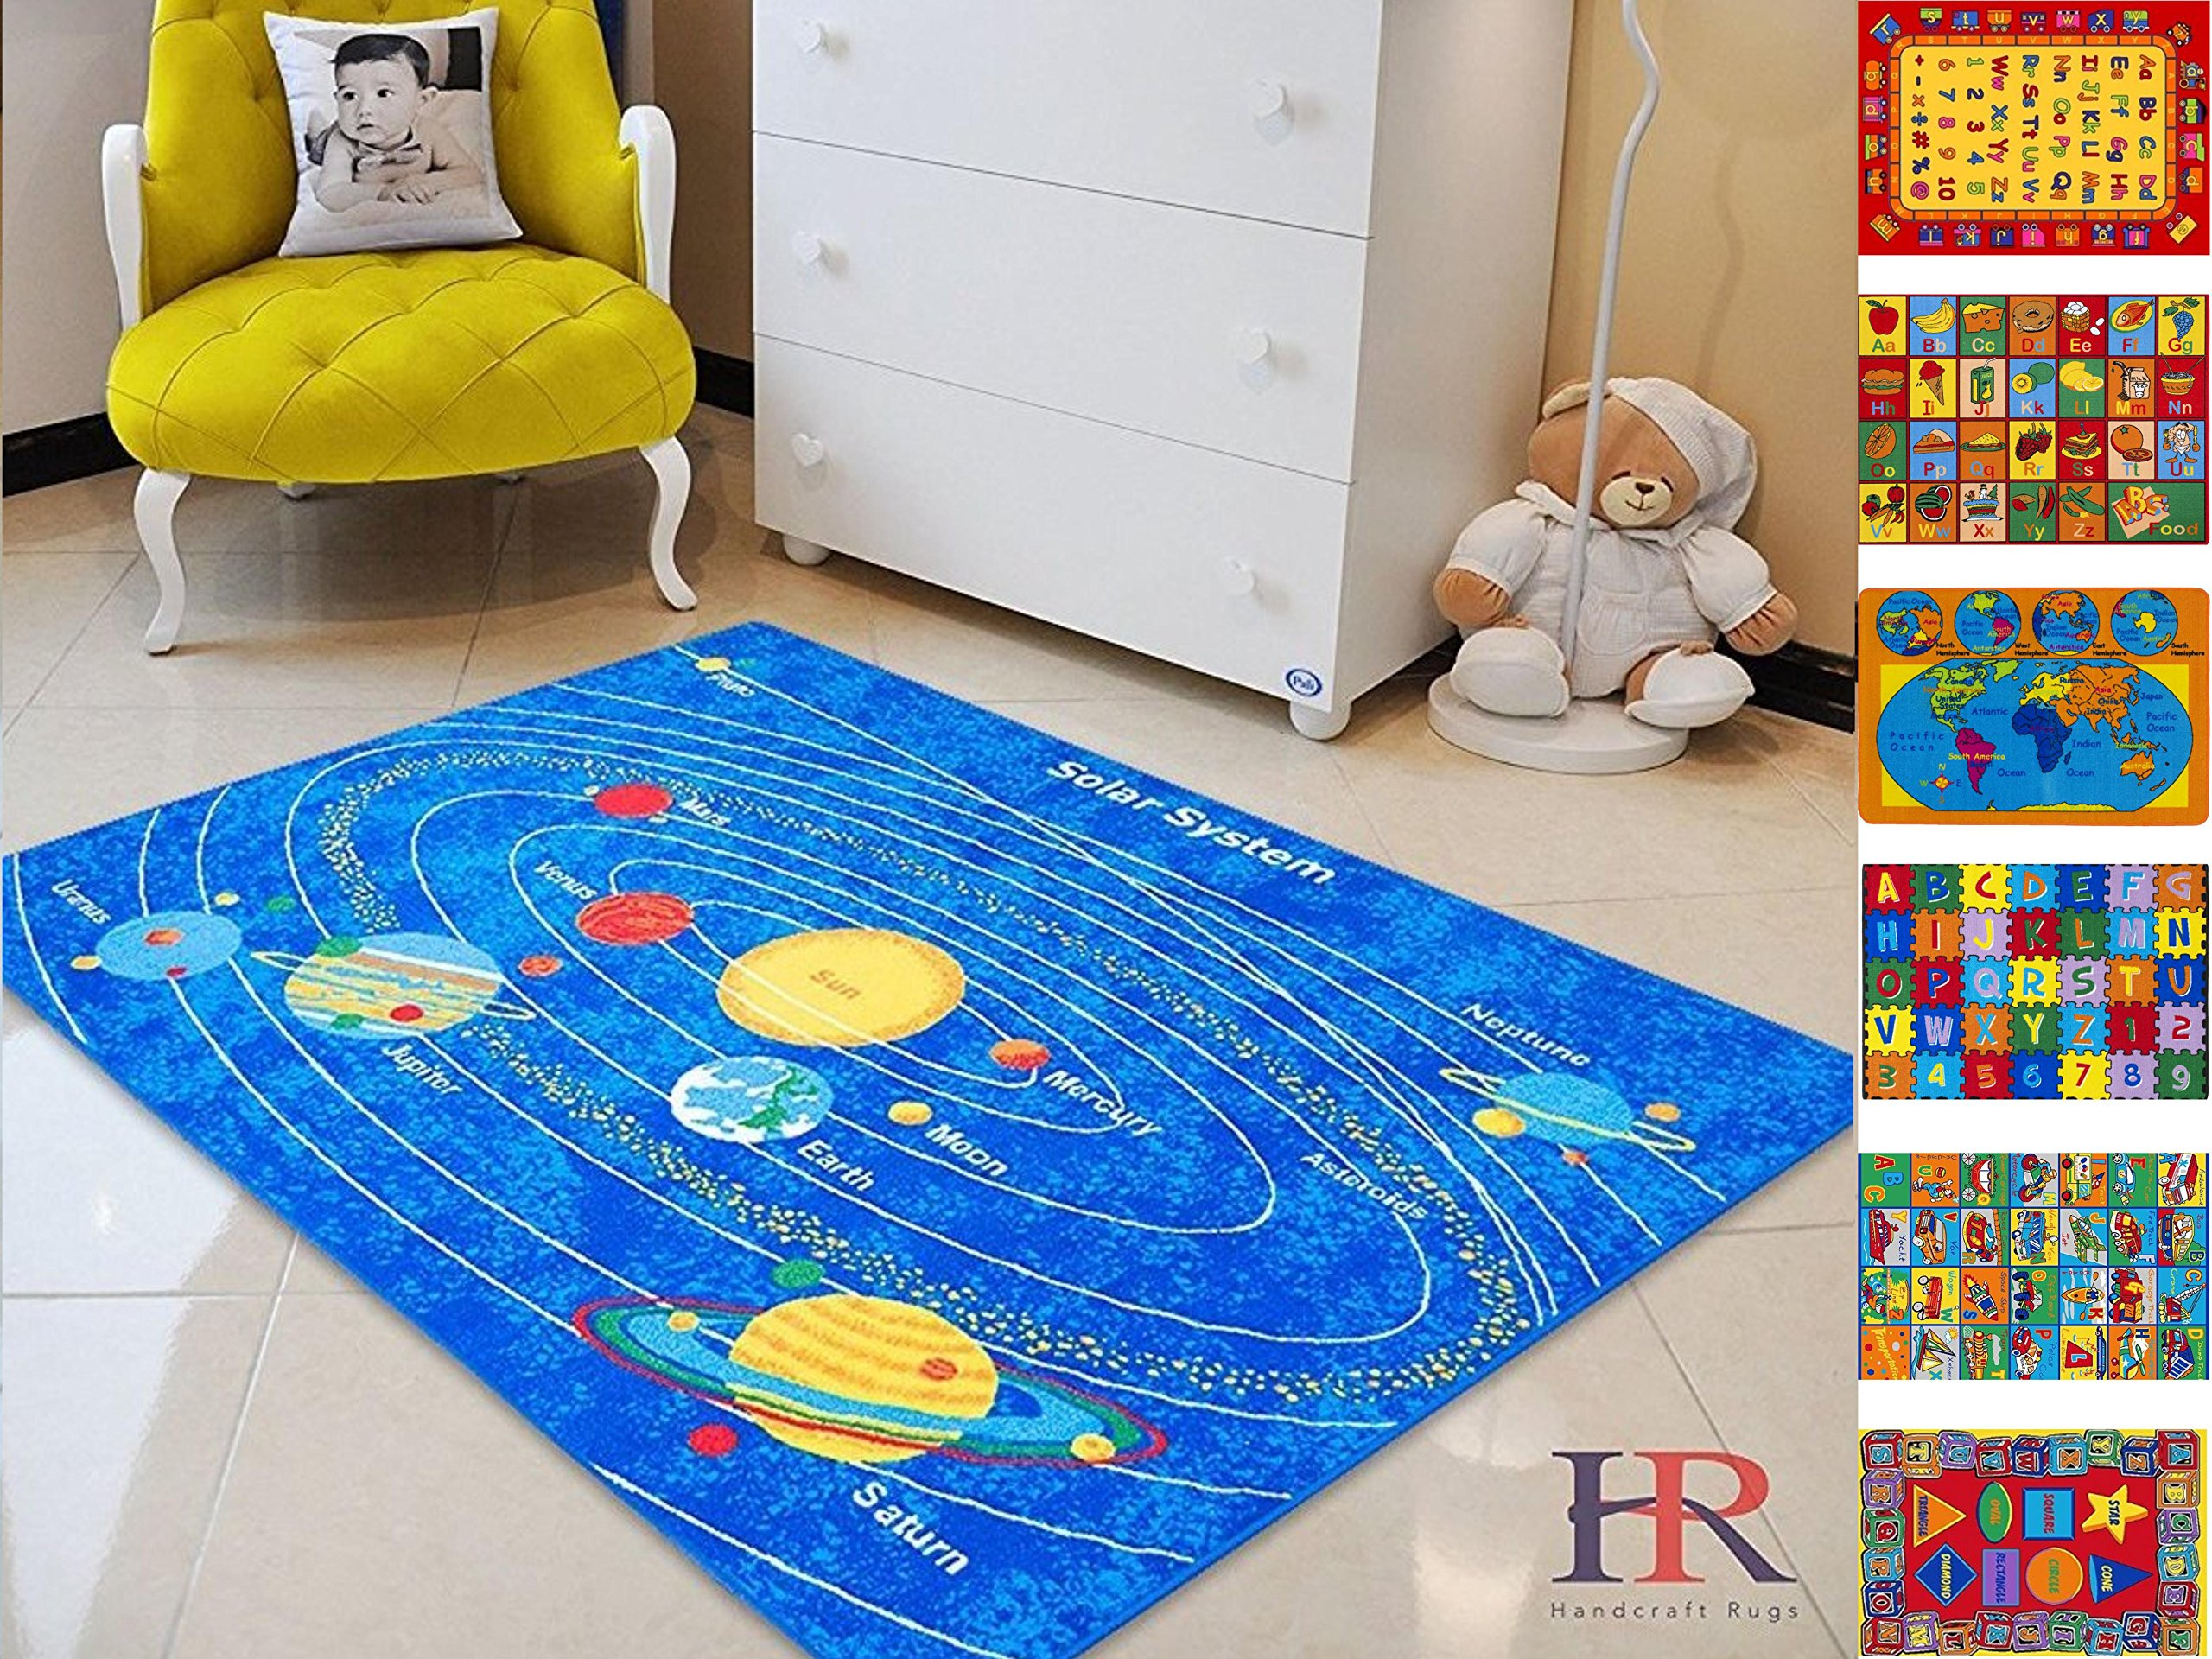 Handcraft Rugs Kids Rugs Educational.Play Time/Learning.Blue Solar System.Gel Back/Non-Slip.